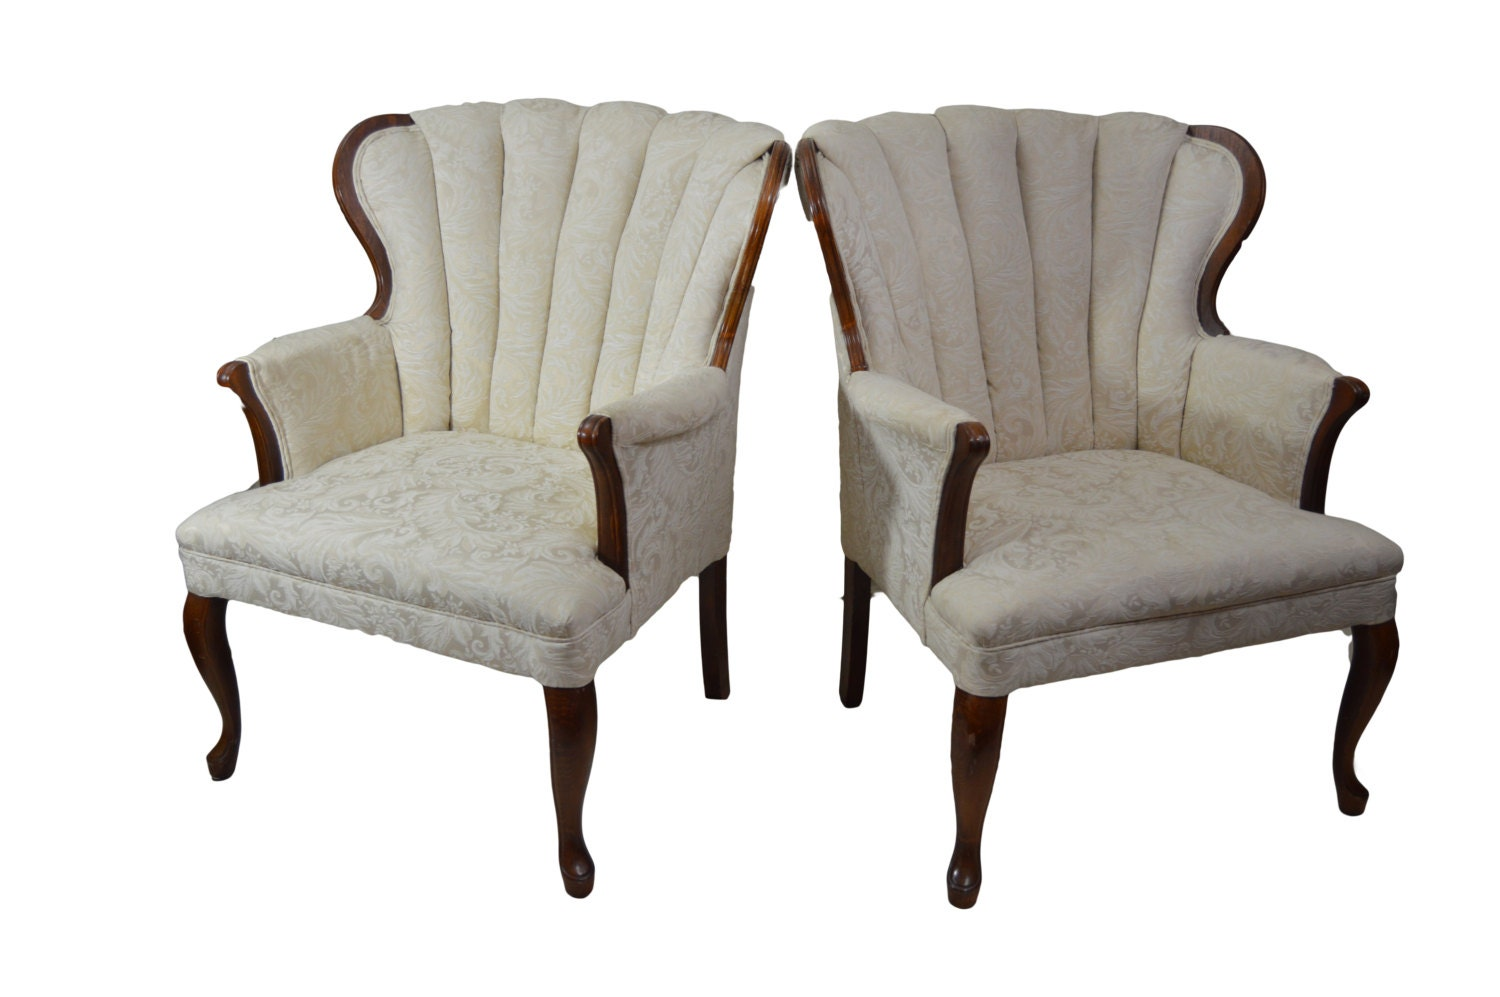 antique channel back chairs shabby chic cottage chic